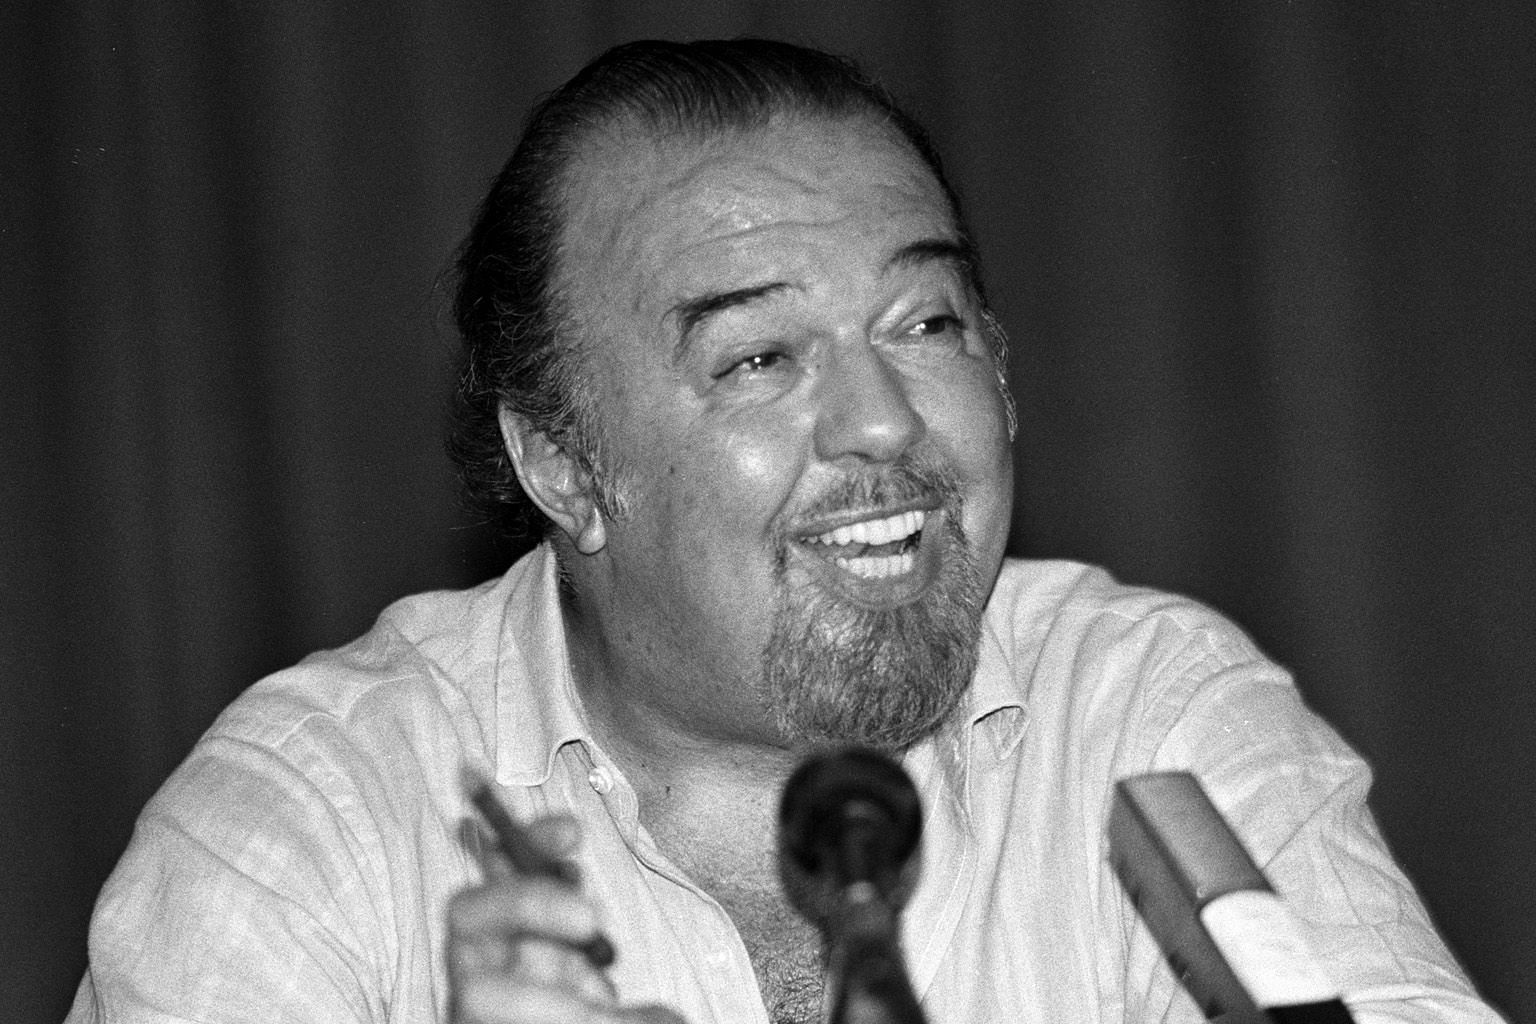 British national theatre director Peter Hall in a 1988 photo.